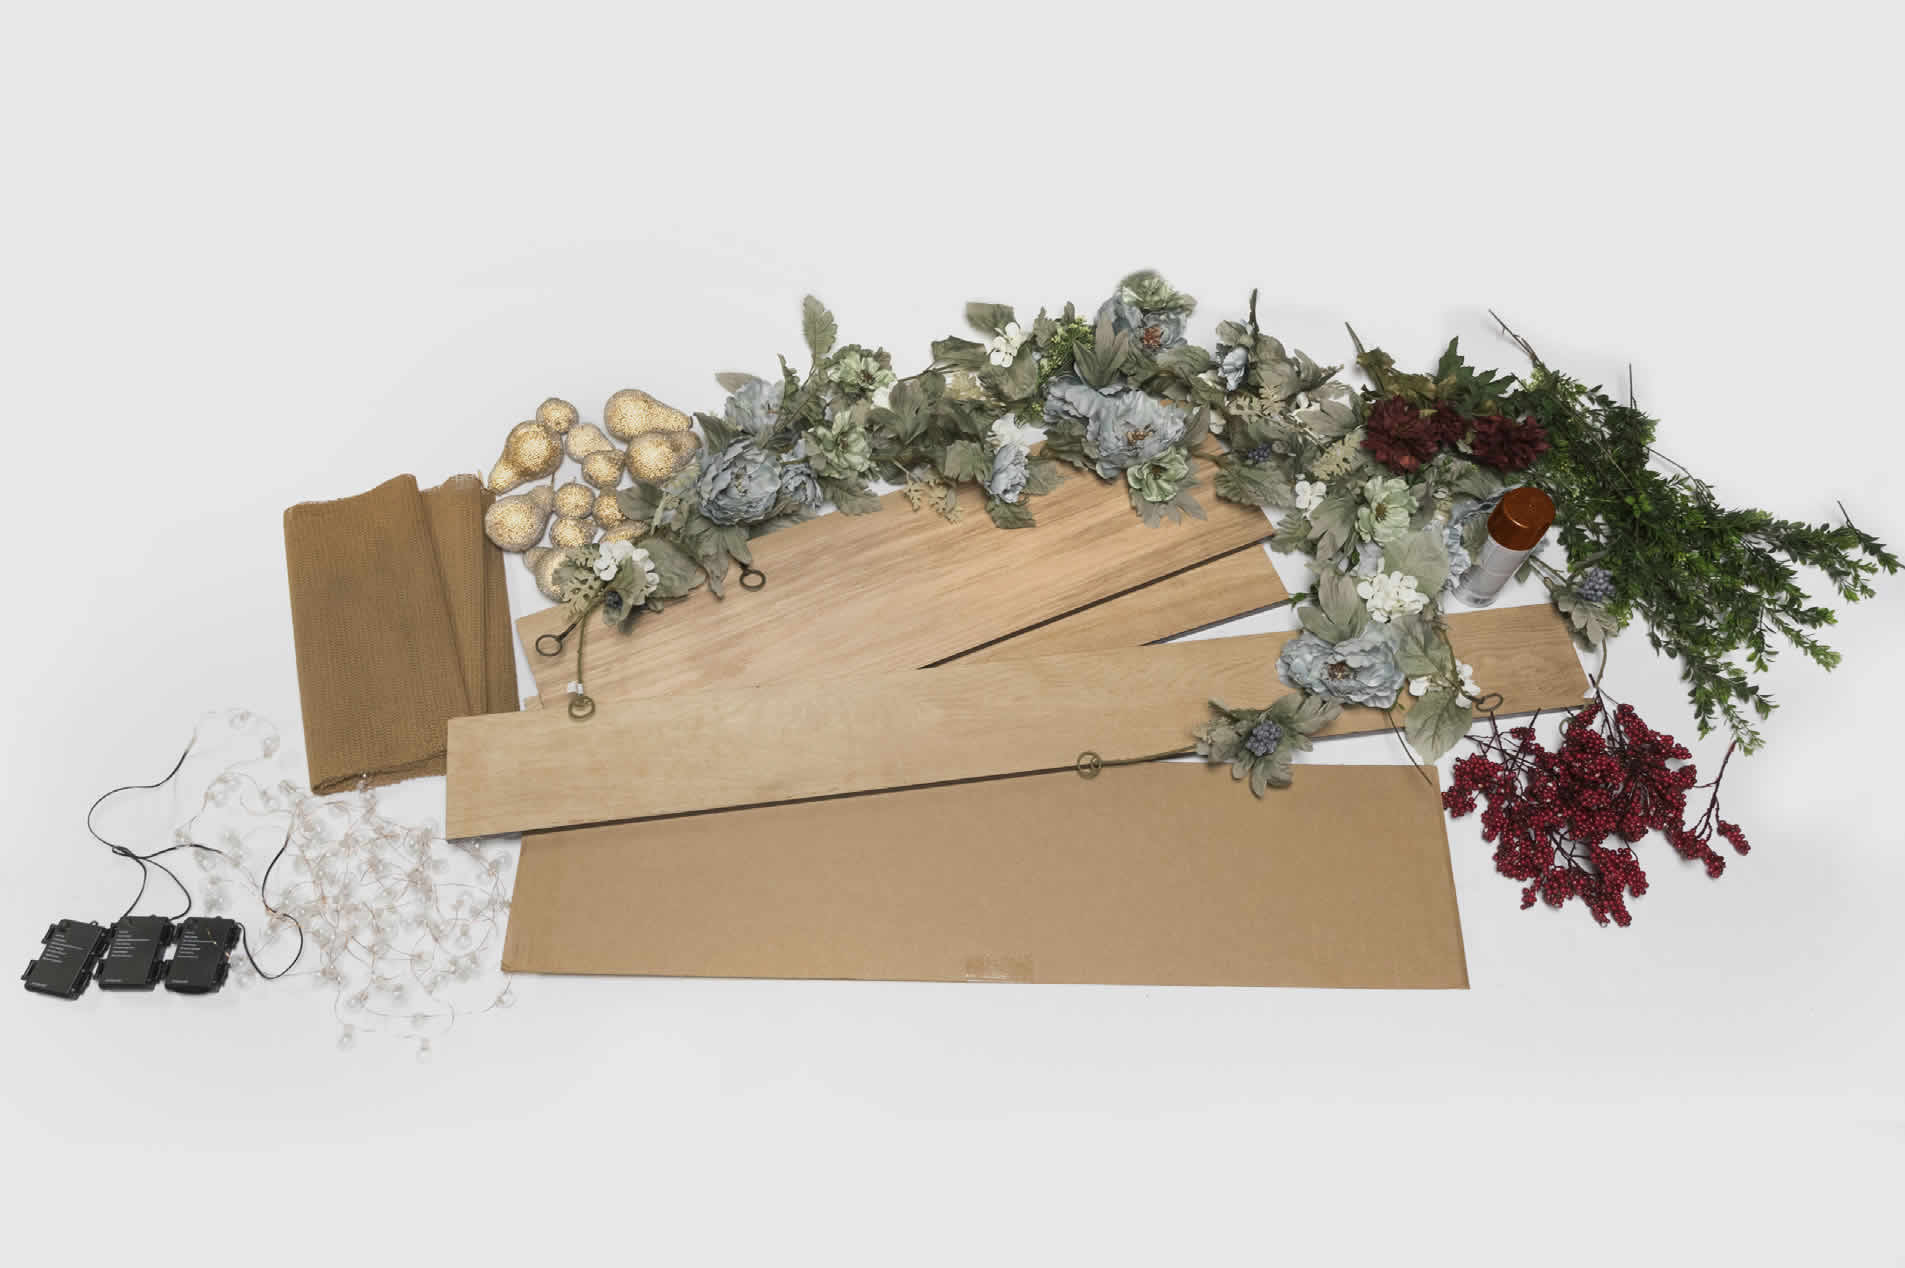 various materials for making holiday mantel project